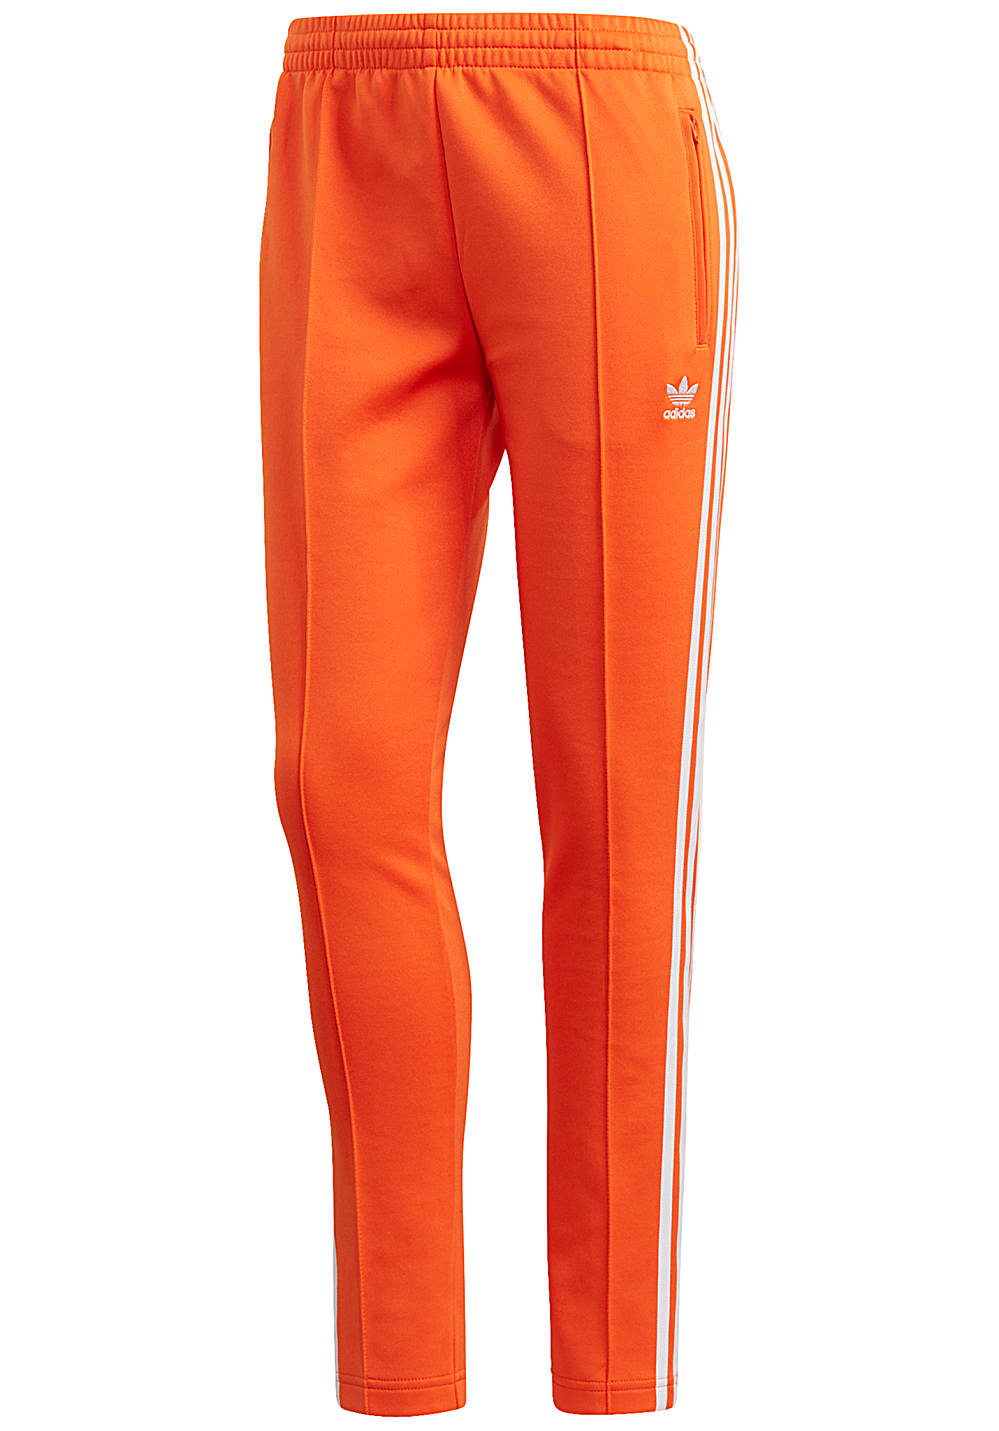 ADIDAS ORIGINALS Sst - Pantalon de survêtement pour Femme - Orange